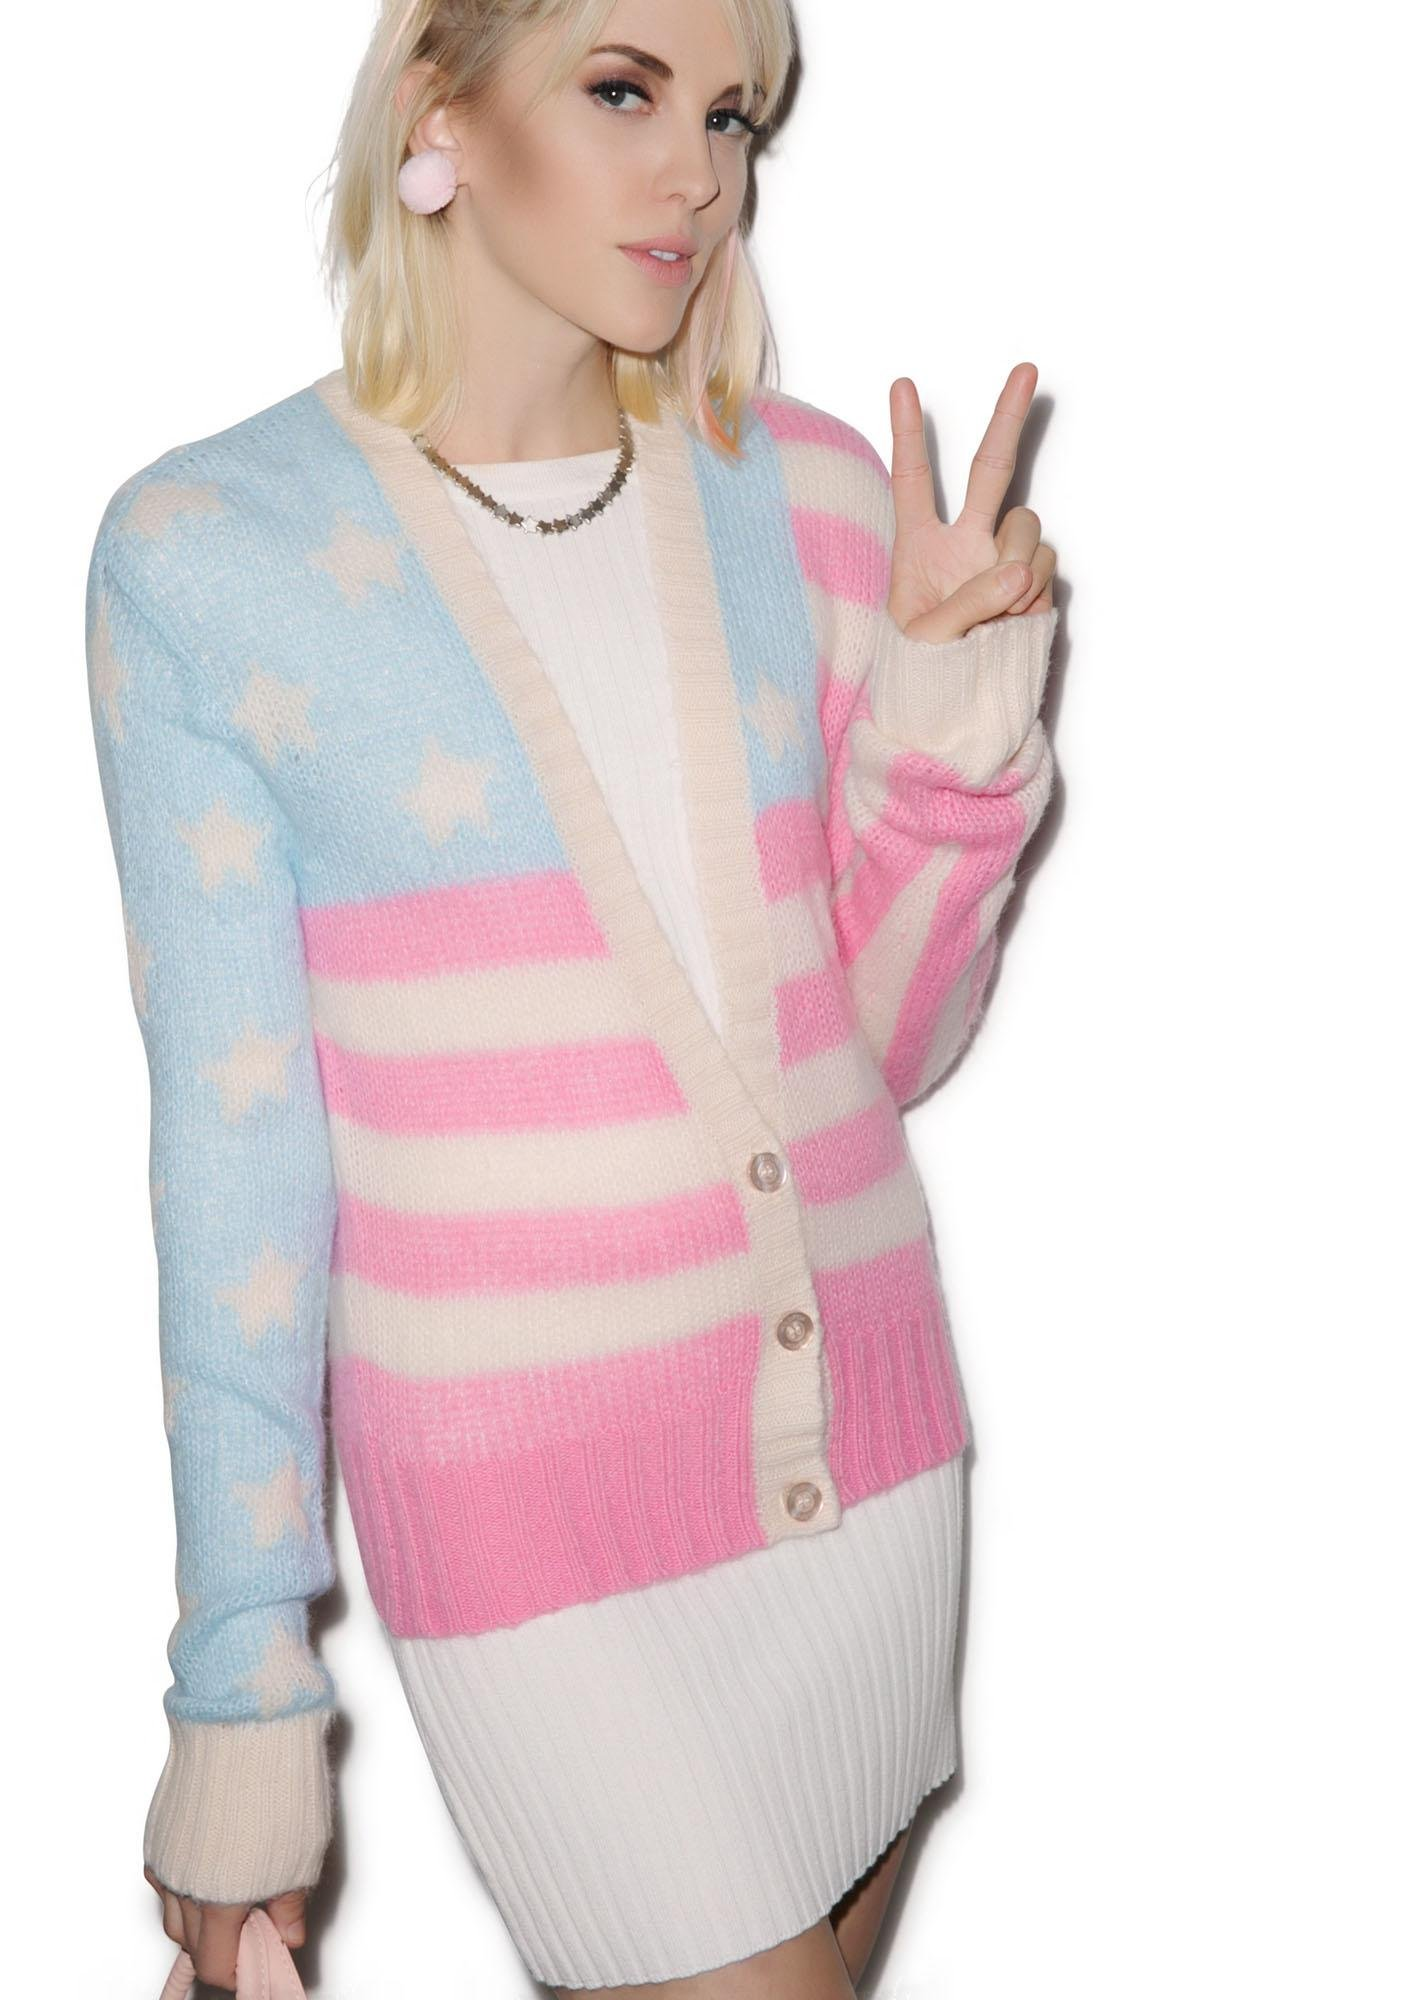 Wildfox Couture American Darling Cardigan